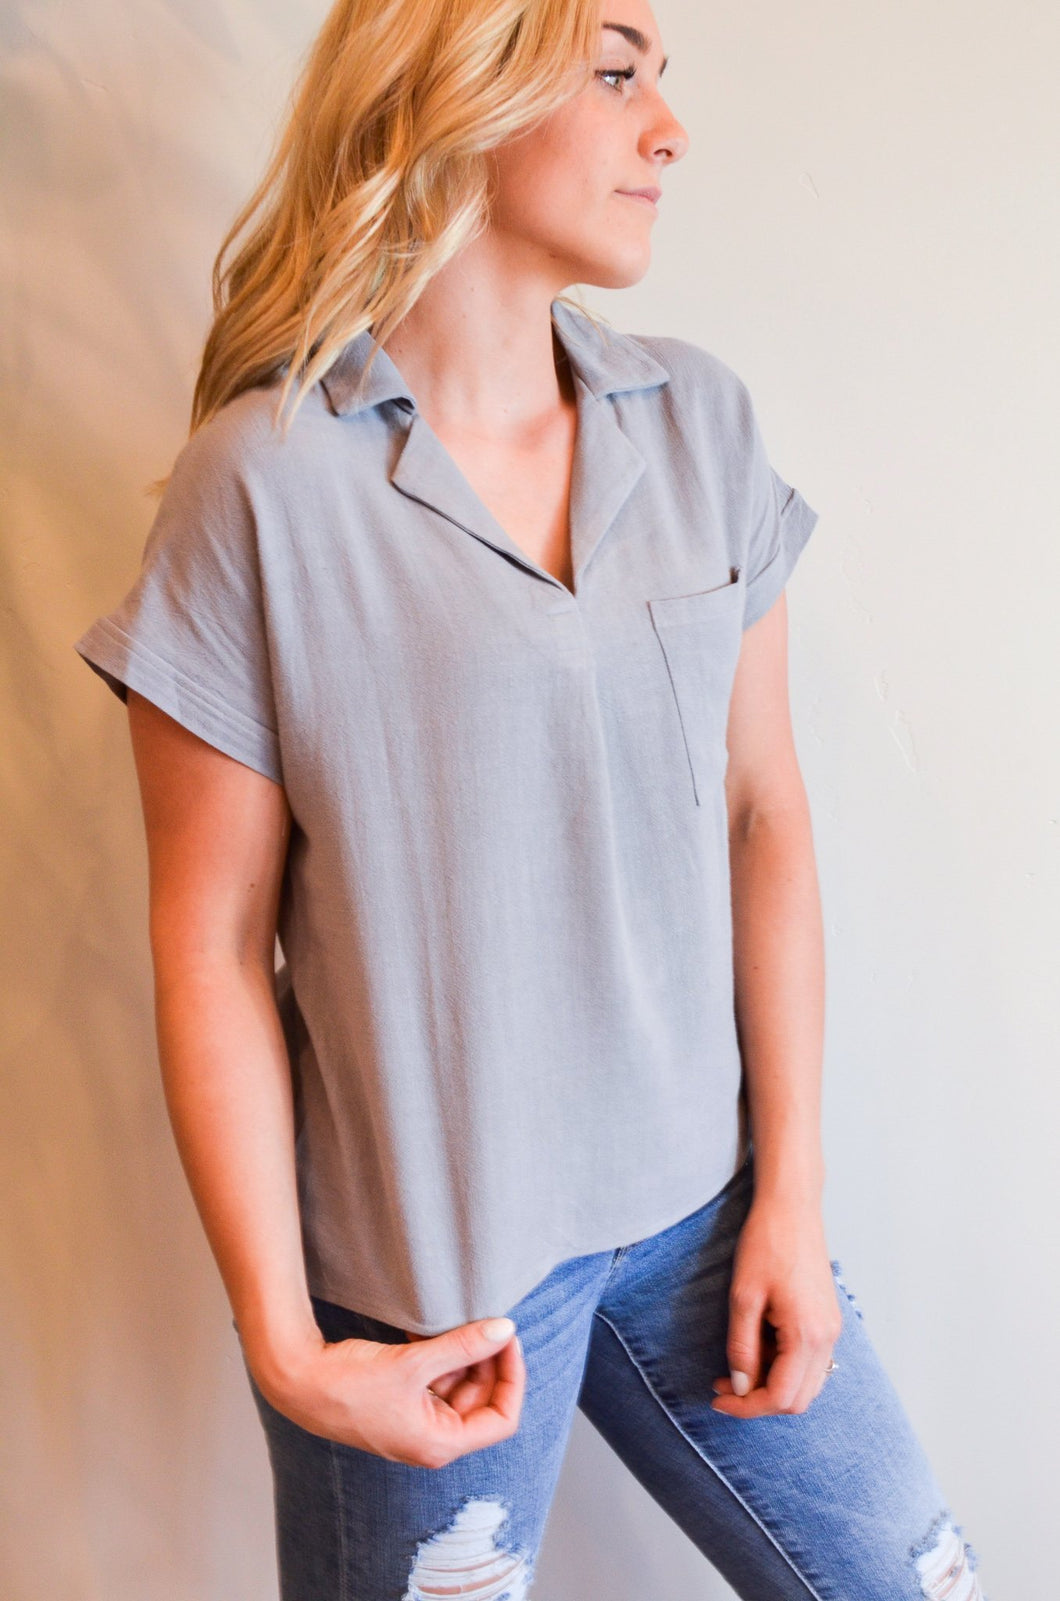 Working For The Weekend Top In Gray - Boho Valley Boutique